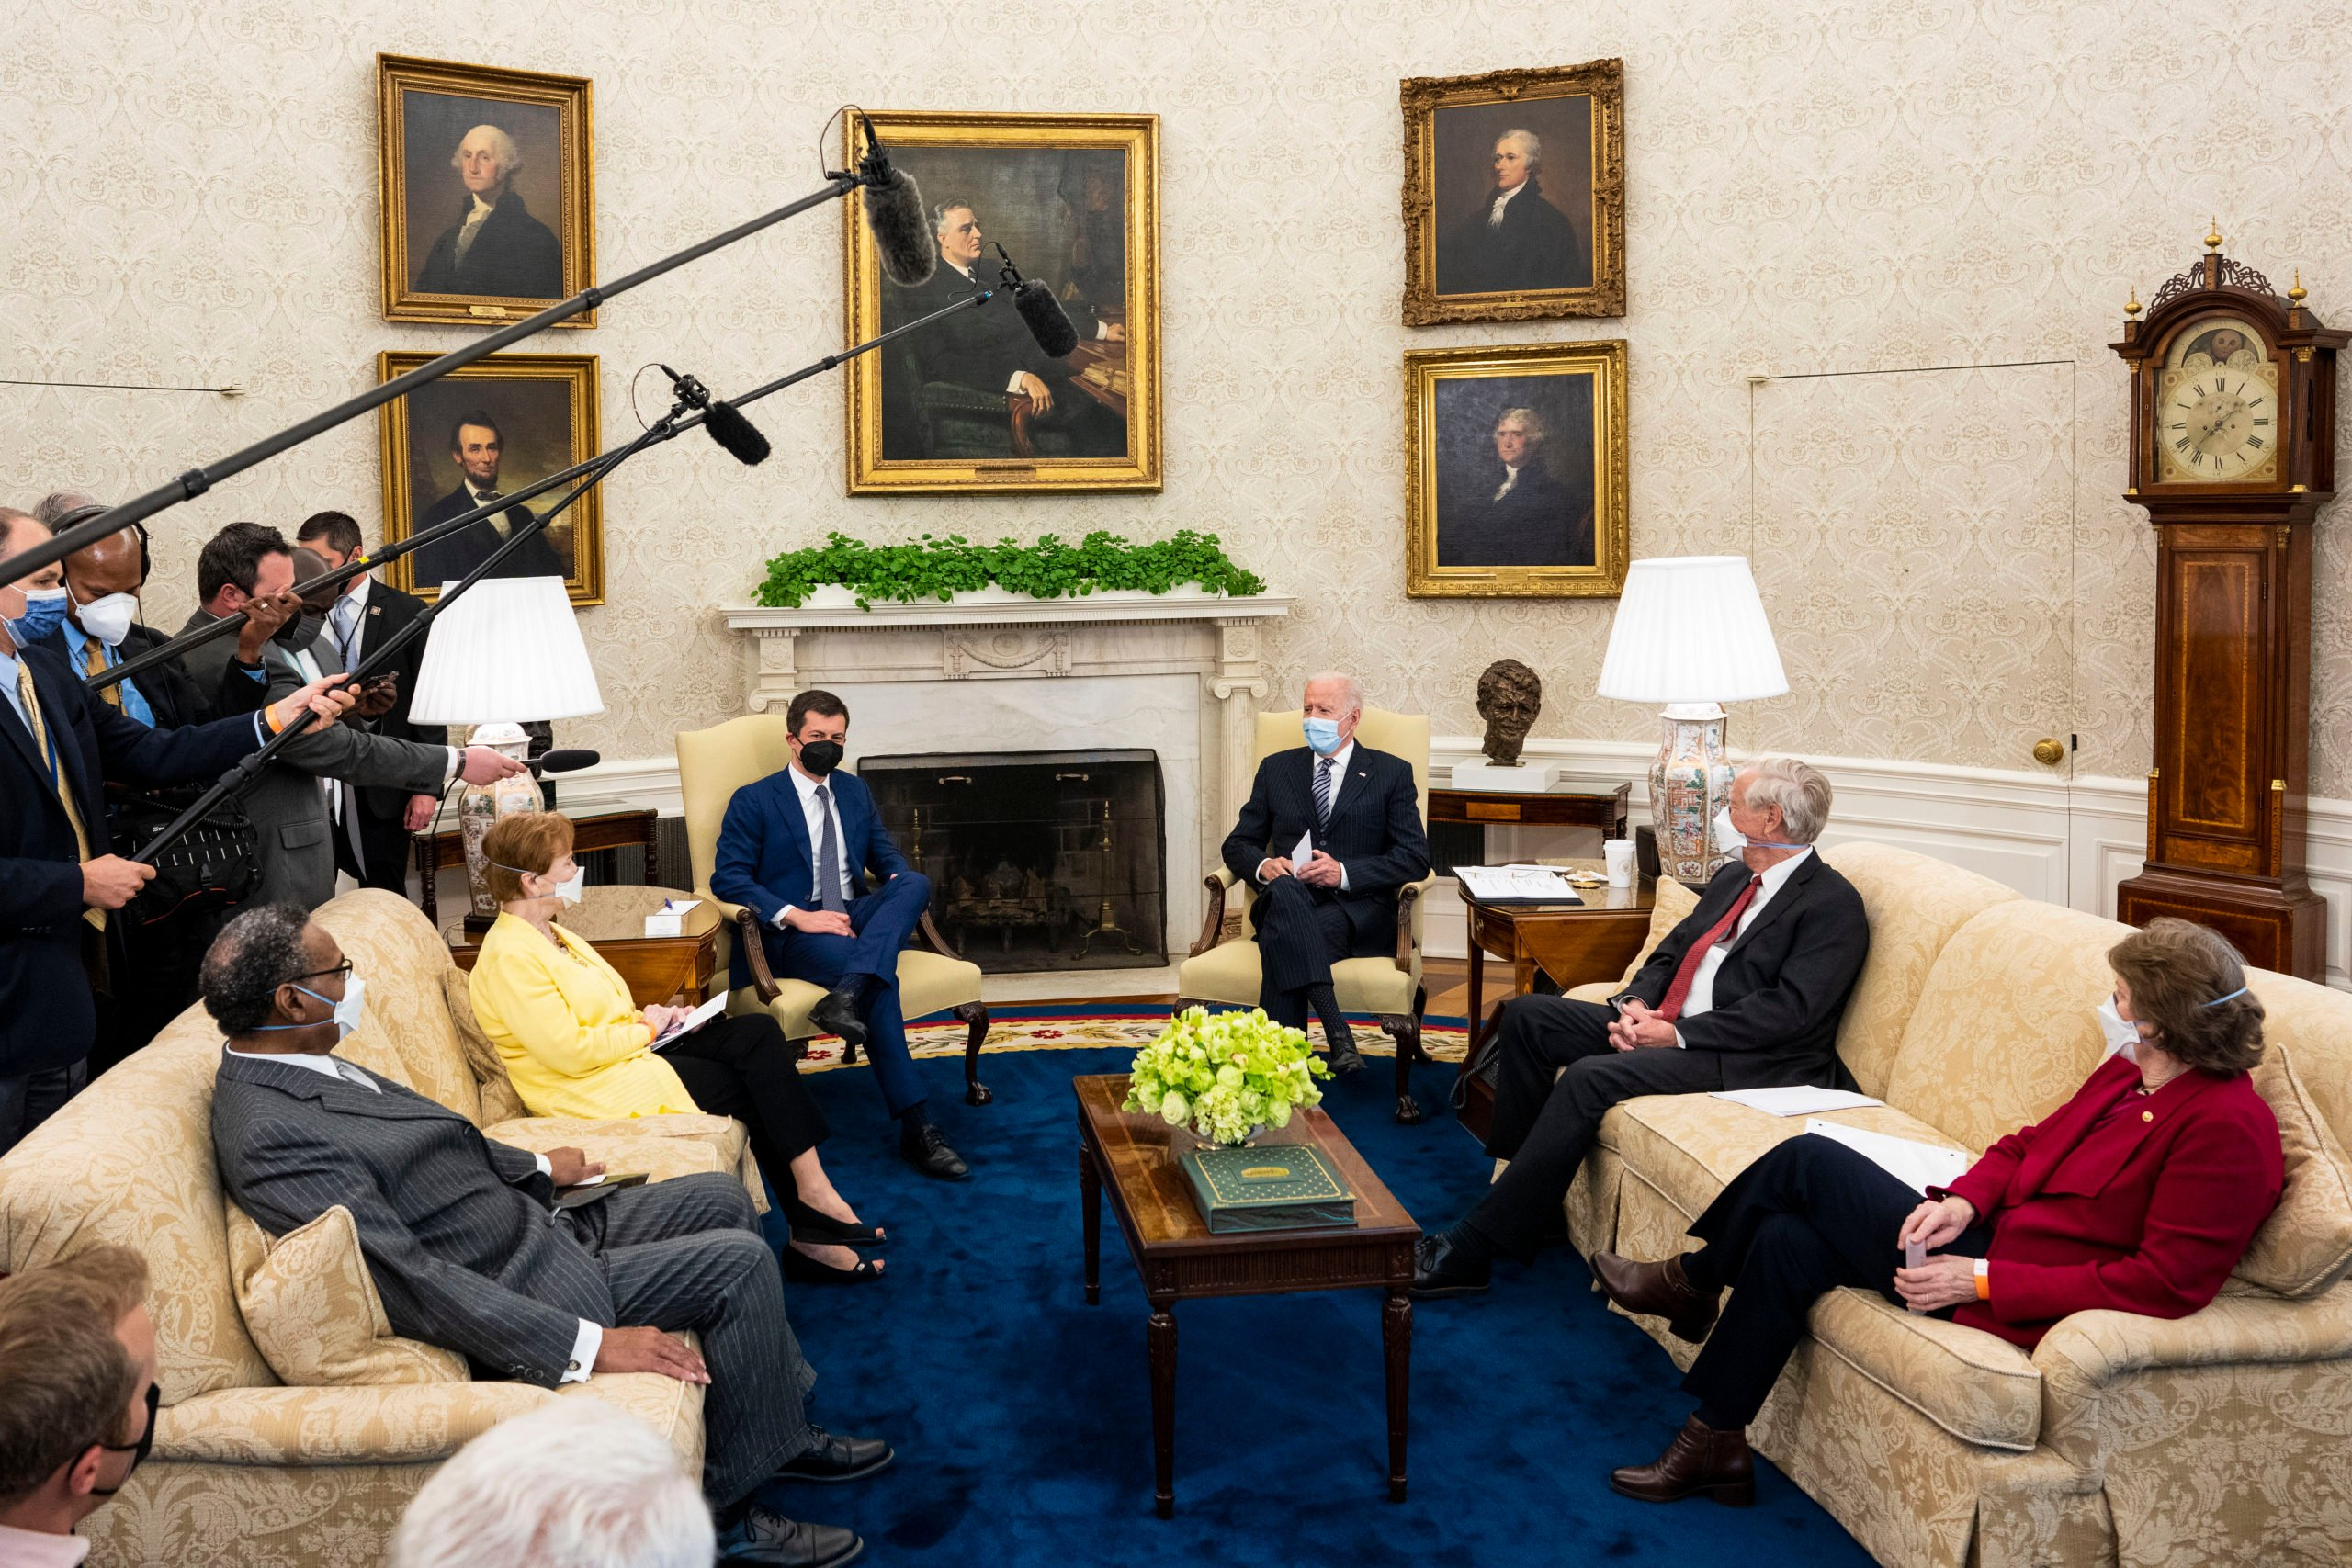 WASHINGTON, DC - APRIL 19: U.S. President Joe Biden (C) speaks during a meeting with a bipartisan group of members of Congress to discuss investments in the American Jobs Plan, including (L-R) Rep. Emanuel Cleaver (D-MO), Rep. Kay Granger (R-TX), Transportation Secretary Pete Buttigieg, Sen. Angus King (I-ME) and Sen. Jeanne Shaheen (D-NH) in the Oval Office at the White House April 19, 2021 in Washington, DC. Biden has proposed raising the corporate tax rate to pay for his initiatives, which include traditional infrastructure projects as well as a major investment in long-term, in-home healthcare. (Photo by Doug Mills-Pool/Getty Images)